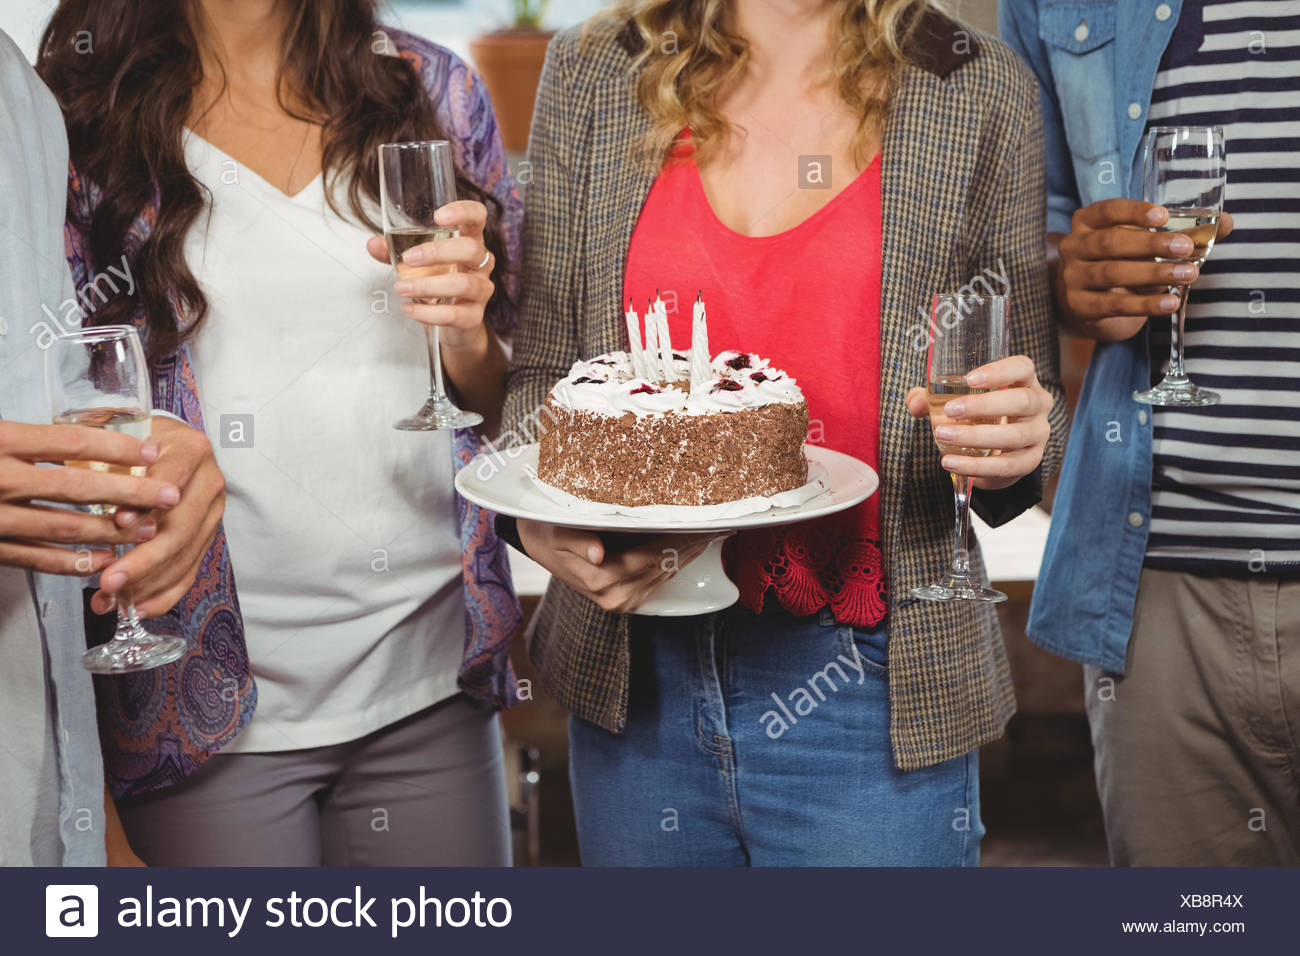 Business People Holding Birthday Cake Stock Photo 282320890 Alamy